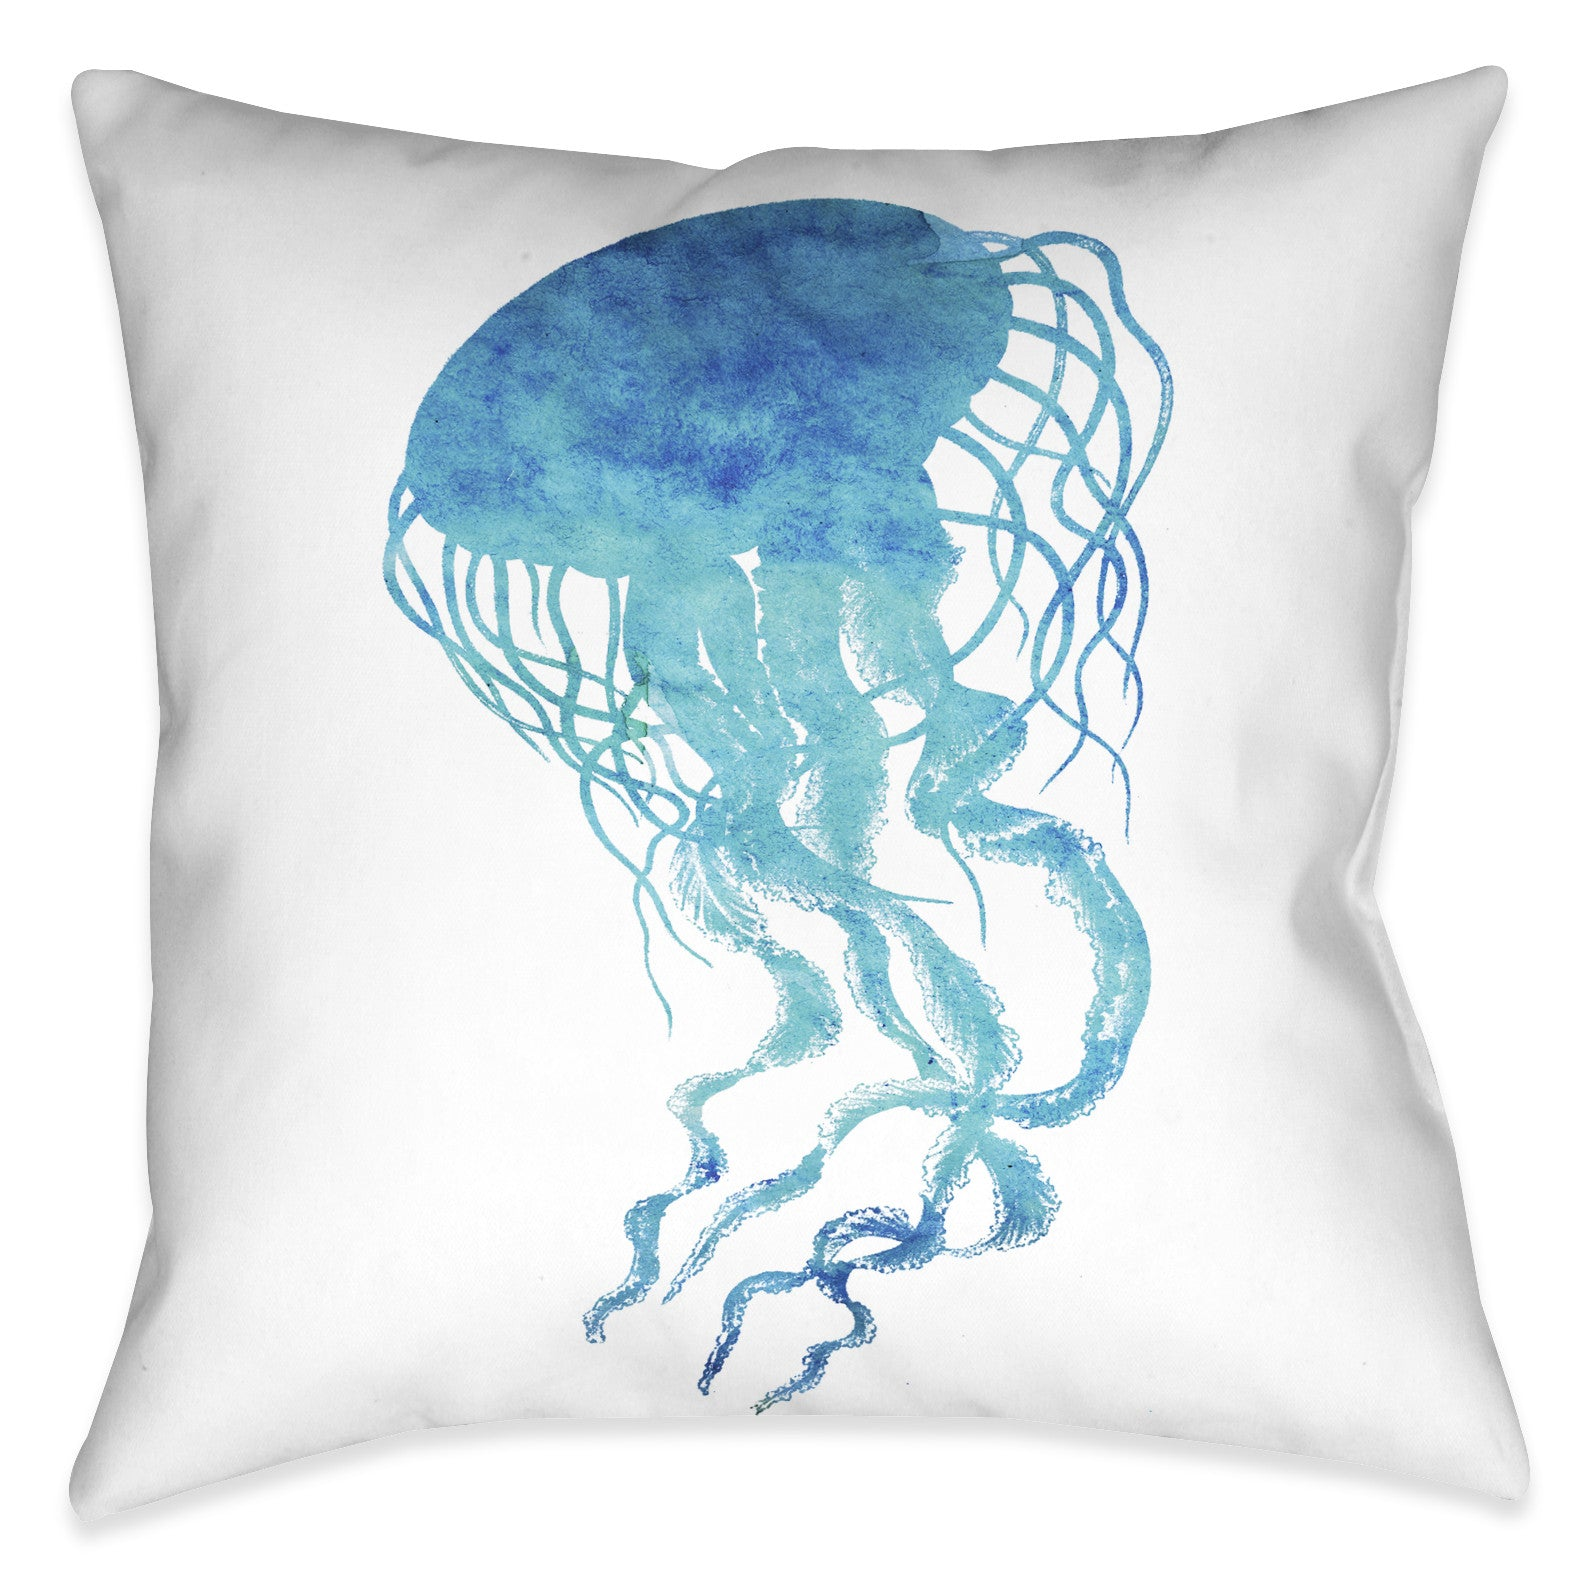 Watercolor Jellyfish Outdoor Decorative Pillow Laural Home